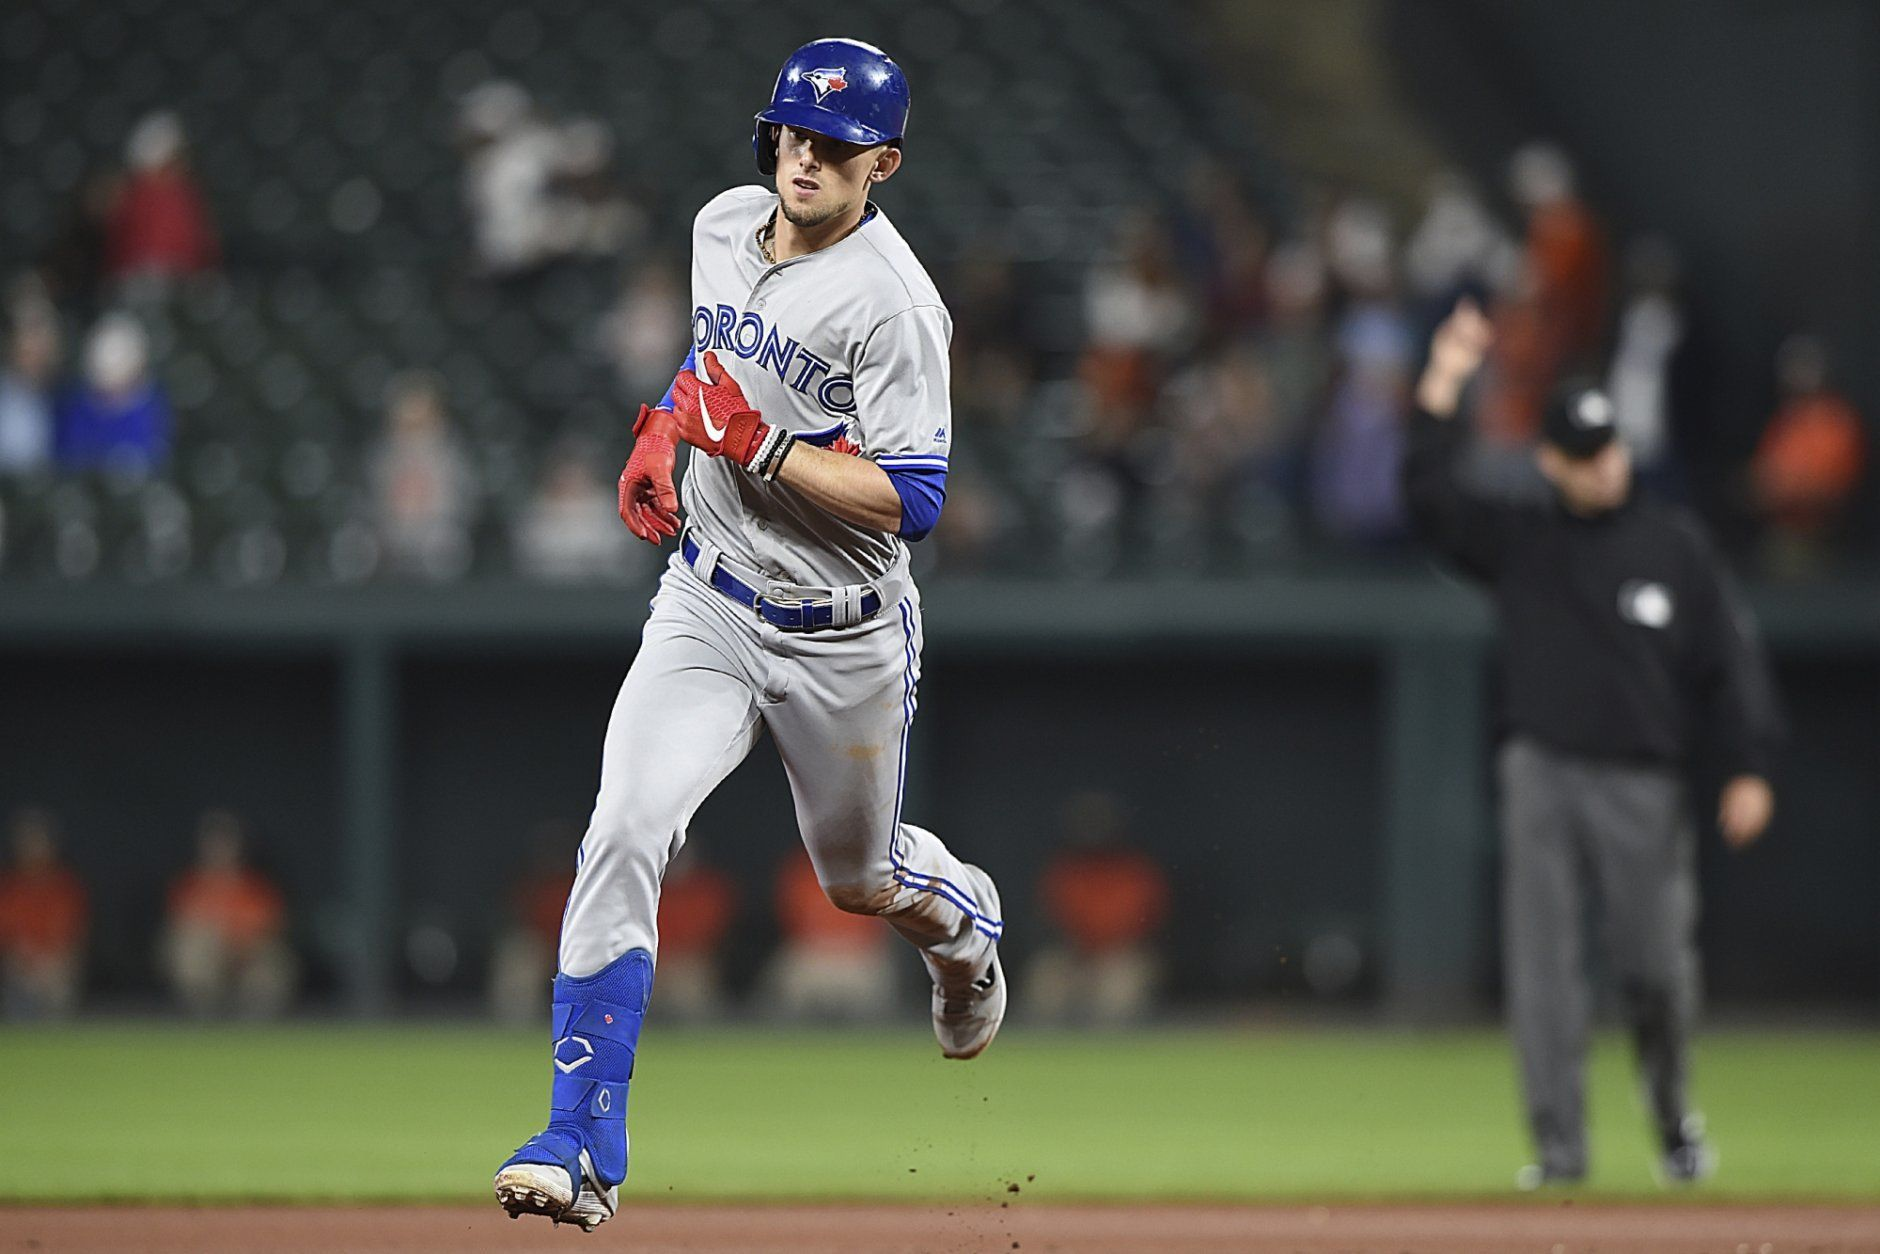 Toronto Blue Jays' Cavan Biggio runs the bases after hitting a solo home run against the Baltimore Orioles during the seventh inning of a baseball game Thursday, June 13, 2019, in Baltimore. (AP Photo/Gail Burton)